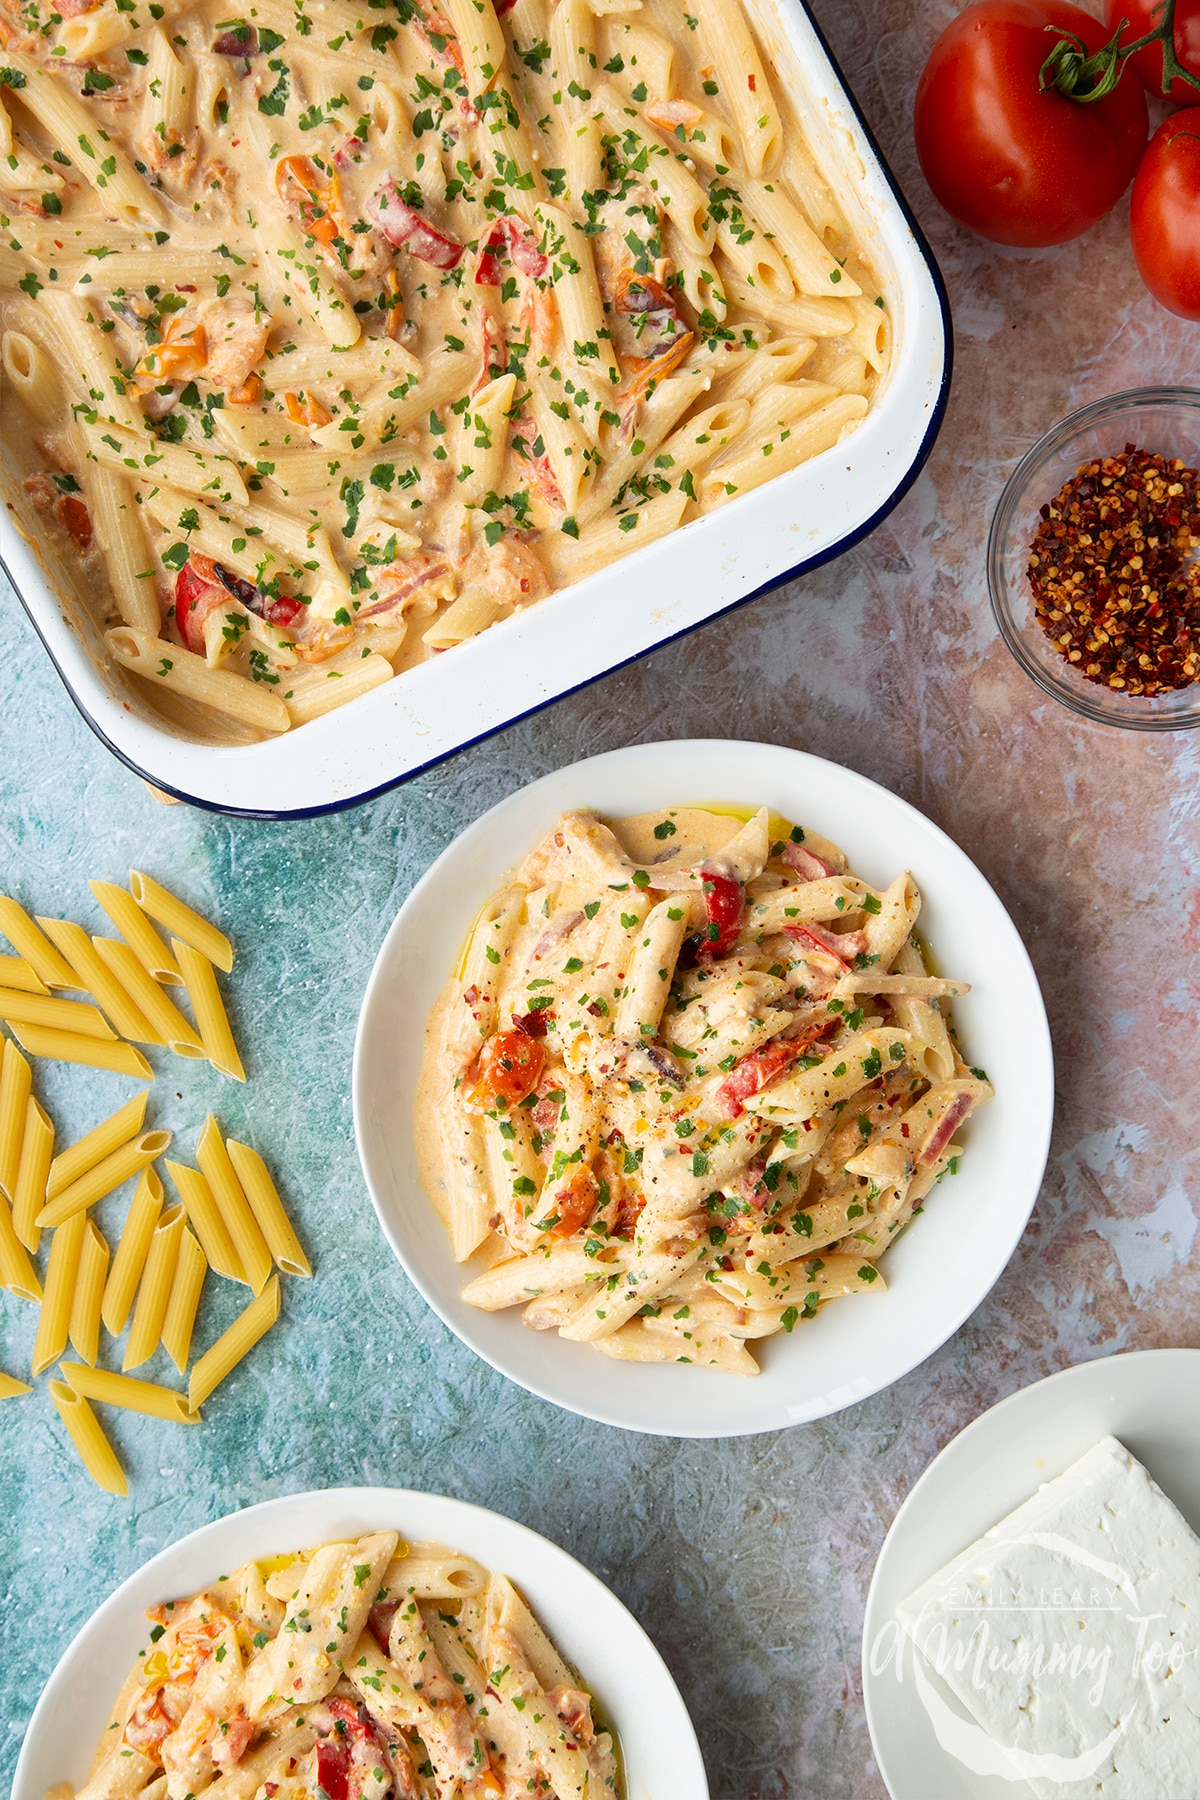 Baked feta pasta in a white bowl, garnished with parsley and chilli flakes. A tray of more pasta is shown beside it.